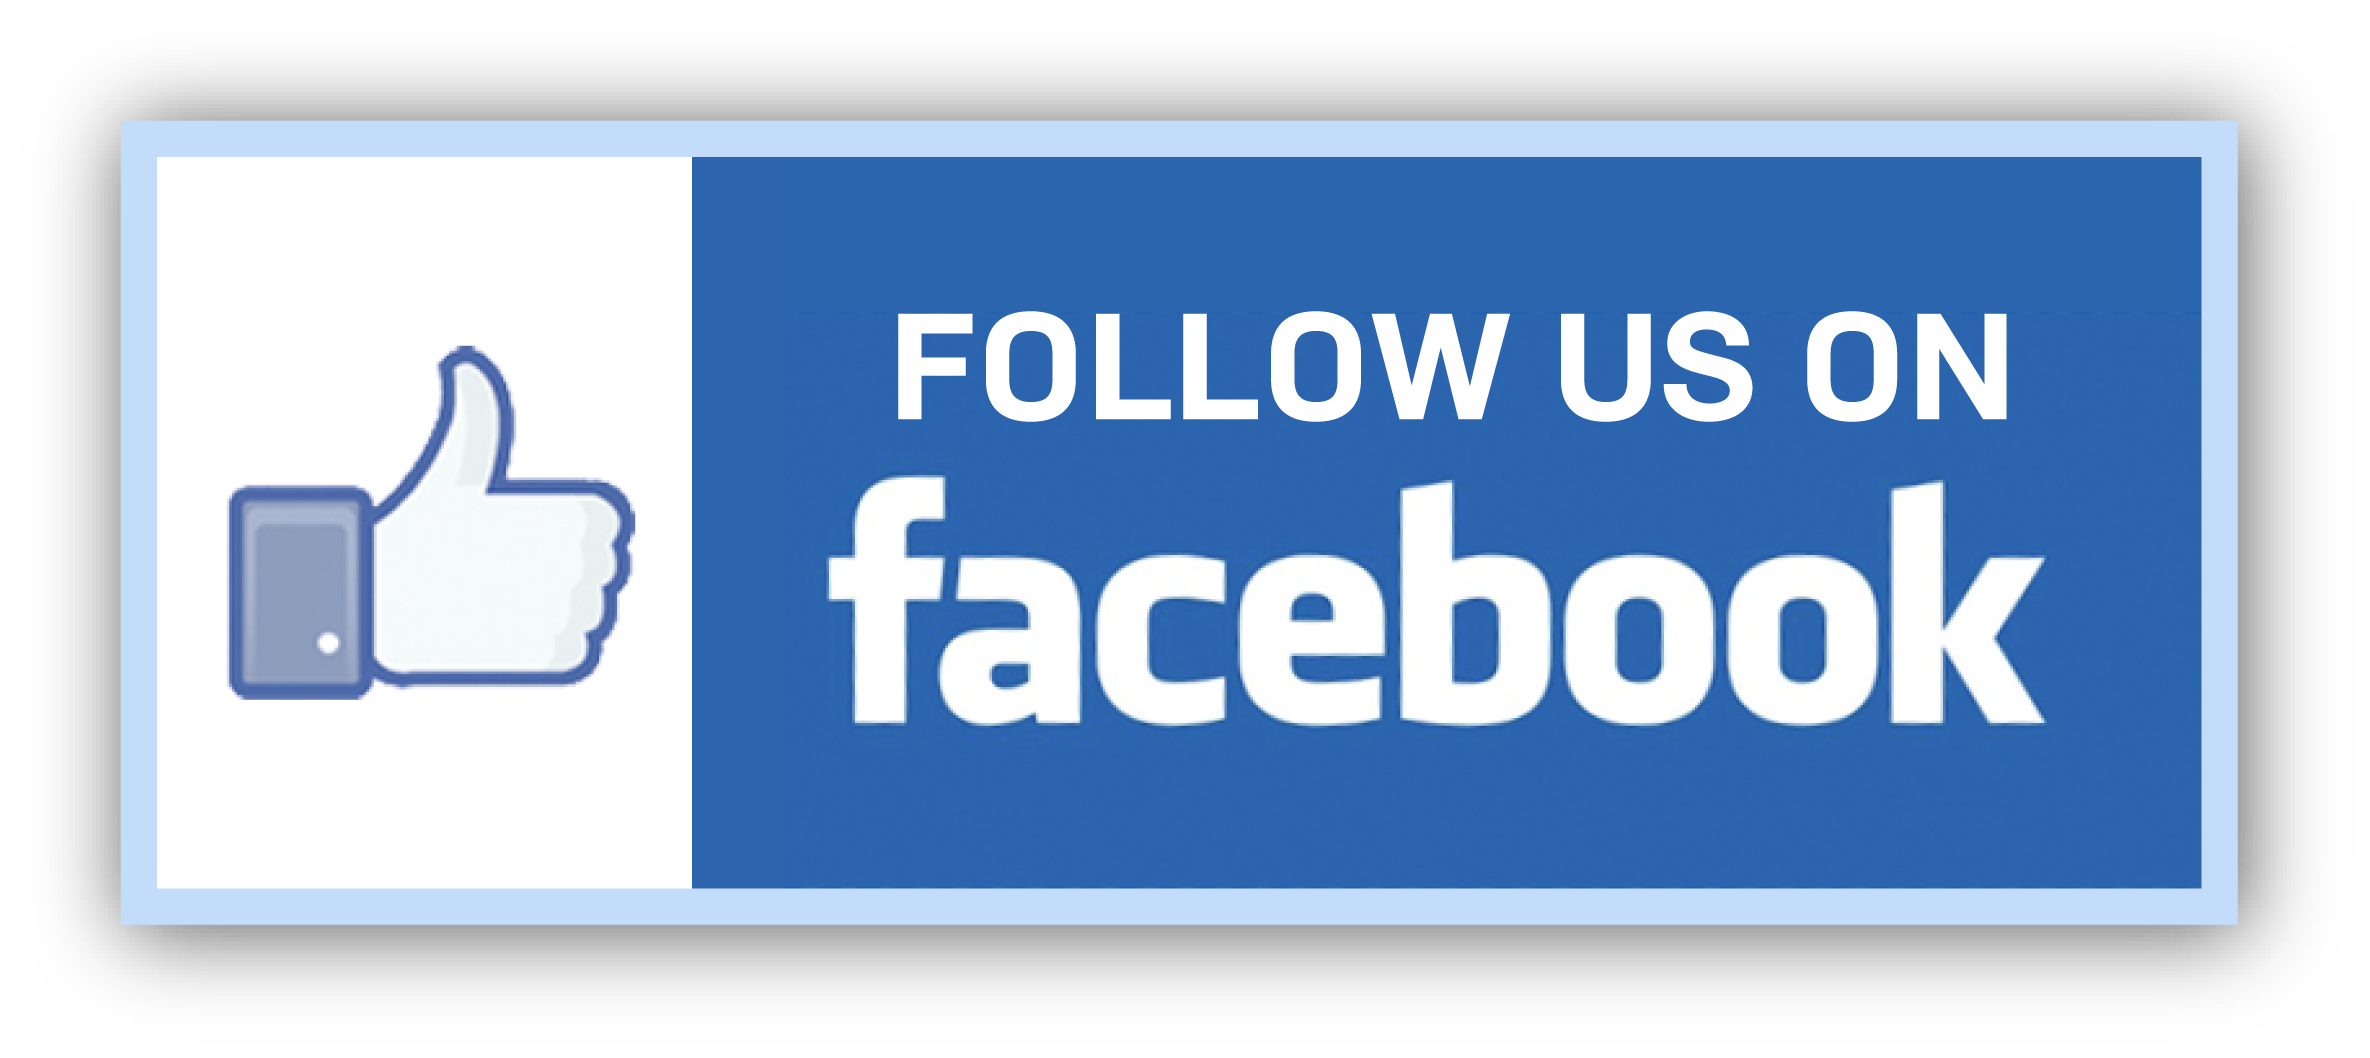 Facebook Marketing and Events